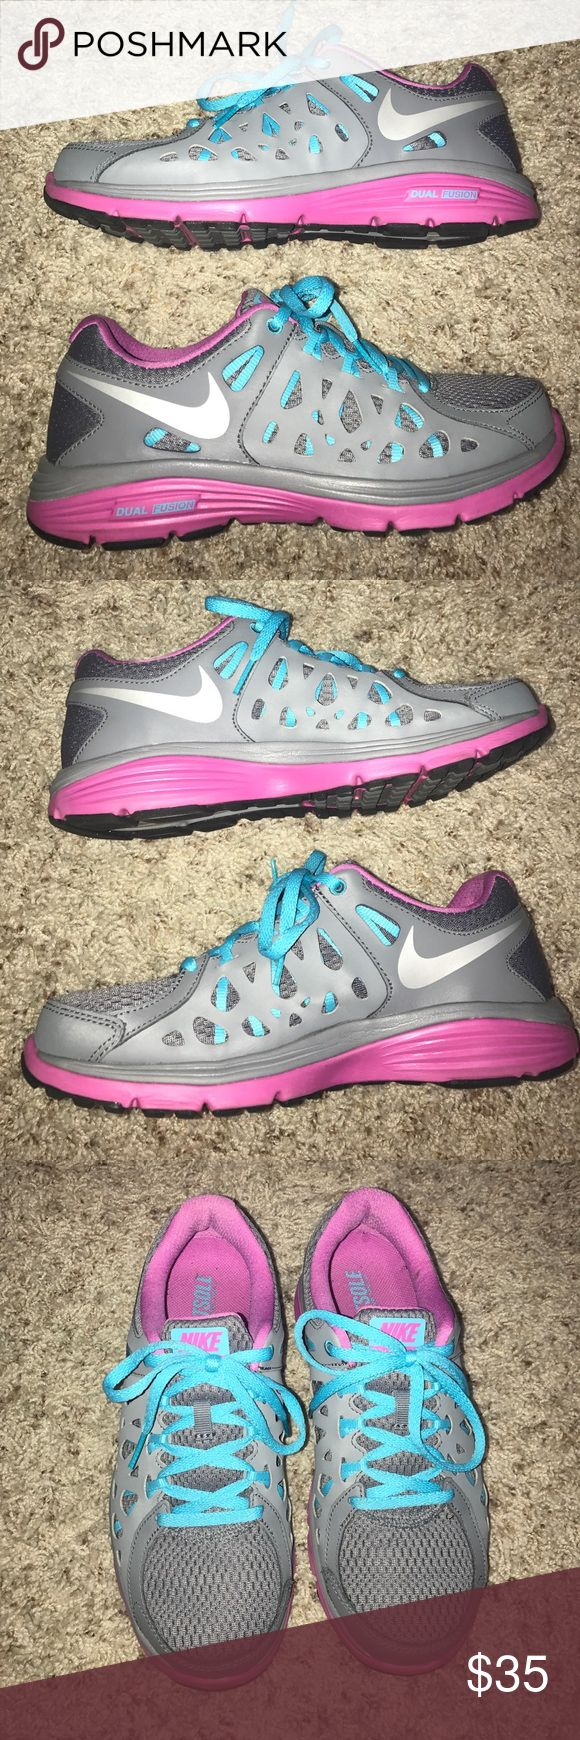 Nike Dual Fusion Run 2 Size 7.5 Women's + Nike Dual Fusion Run 2 + Women's size 7.5 + Bought in 2013   only worn a few times so in excellent condition + Colors are: Grey, Aqua and Purple + Shown with and without the flash so you can have a true idea of the colors + Smoke free and pet free home 🏡 + No trades 🚫  ✨ If you would like any additional photos or if you have any questions... please let me know! Nike Shoes Athletic Shoes